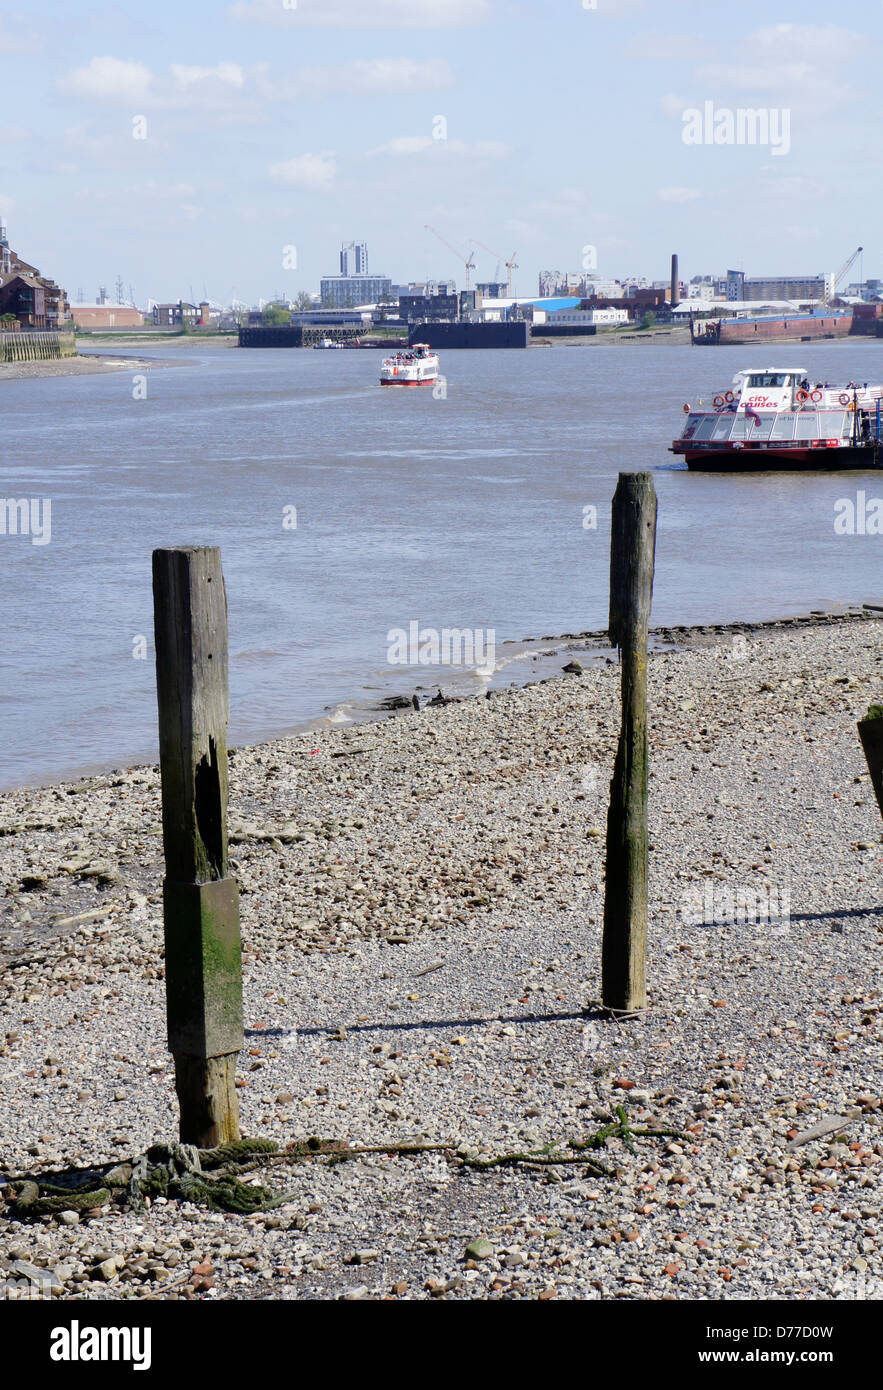 Exposed timbers at low tide, Thames foreshore, Greenwich, London, England - Stock Image